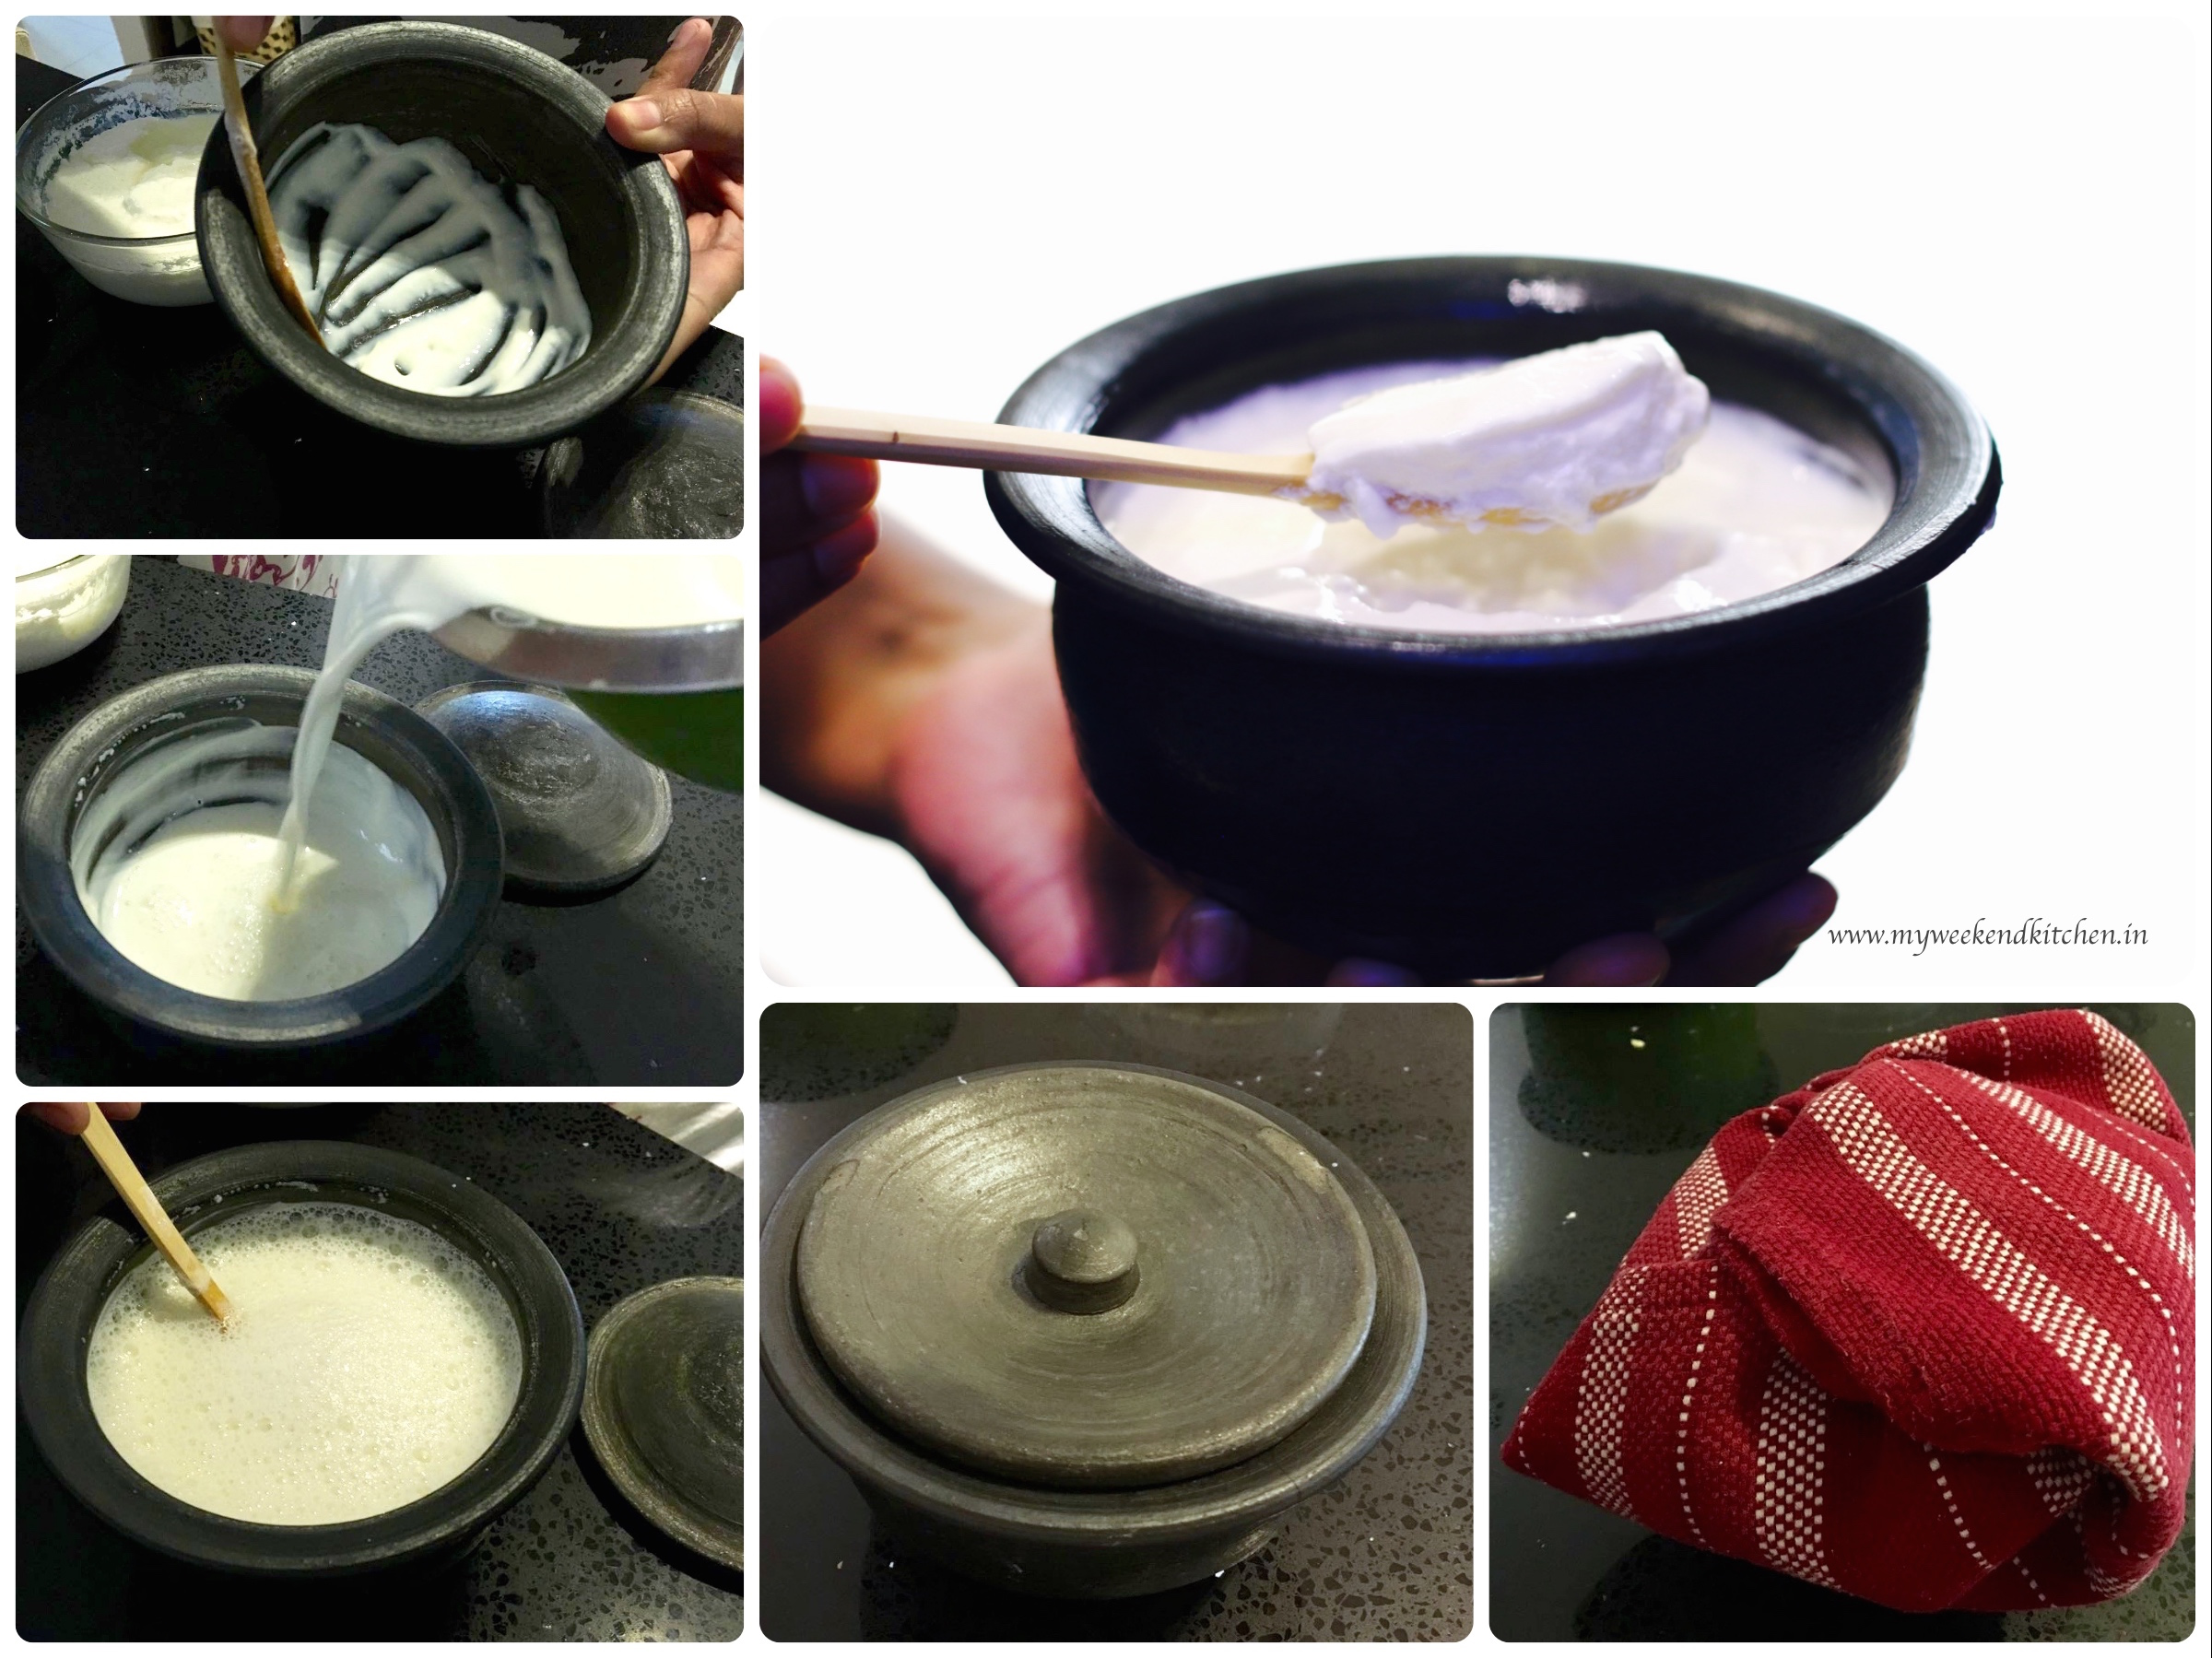 step by step photos for making yogurt at home